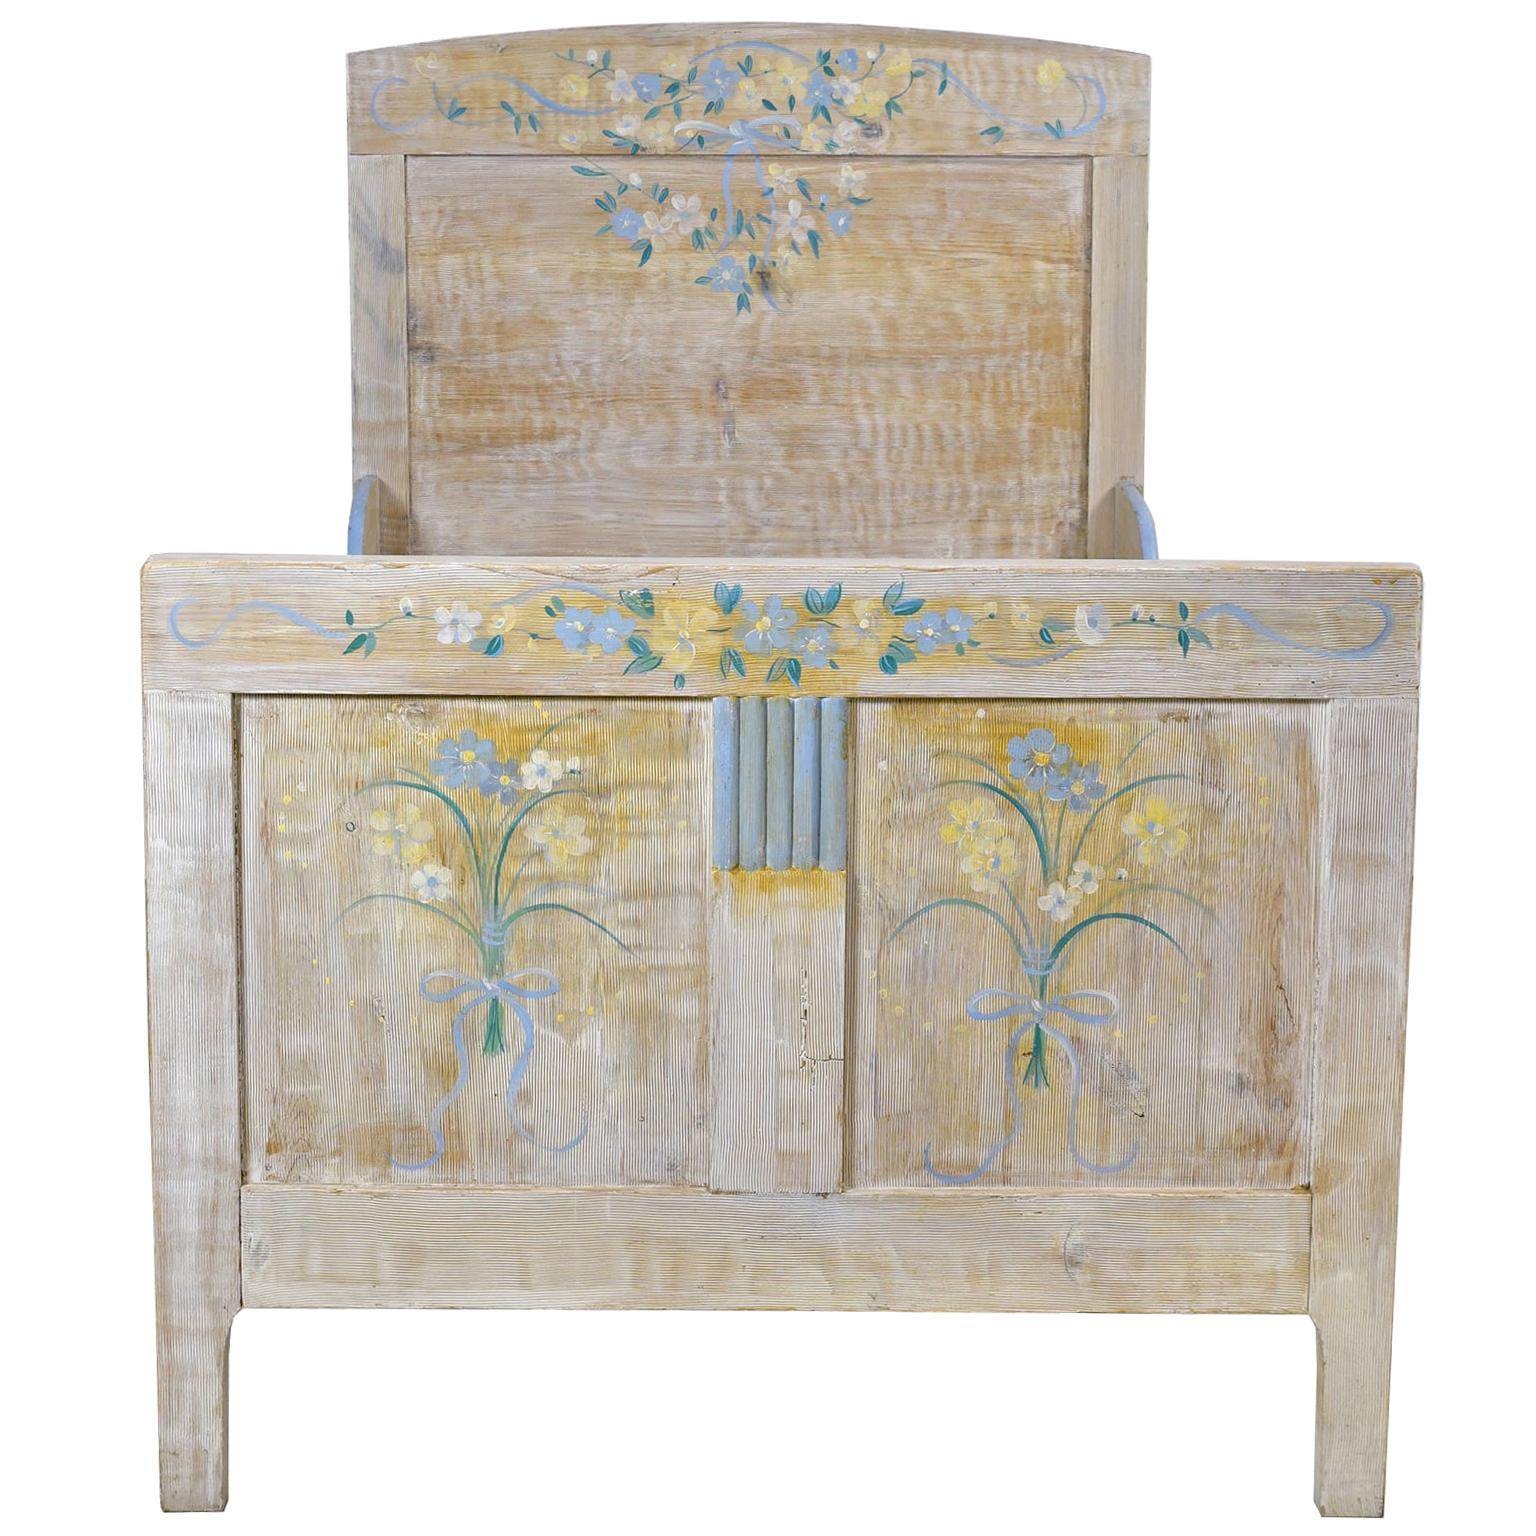 Child's Bed with Blue & Yellow Flowers over White Background, Europe, circa 1920